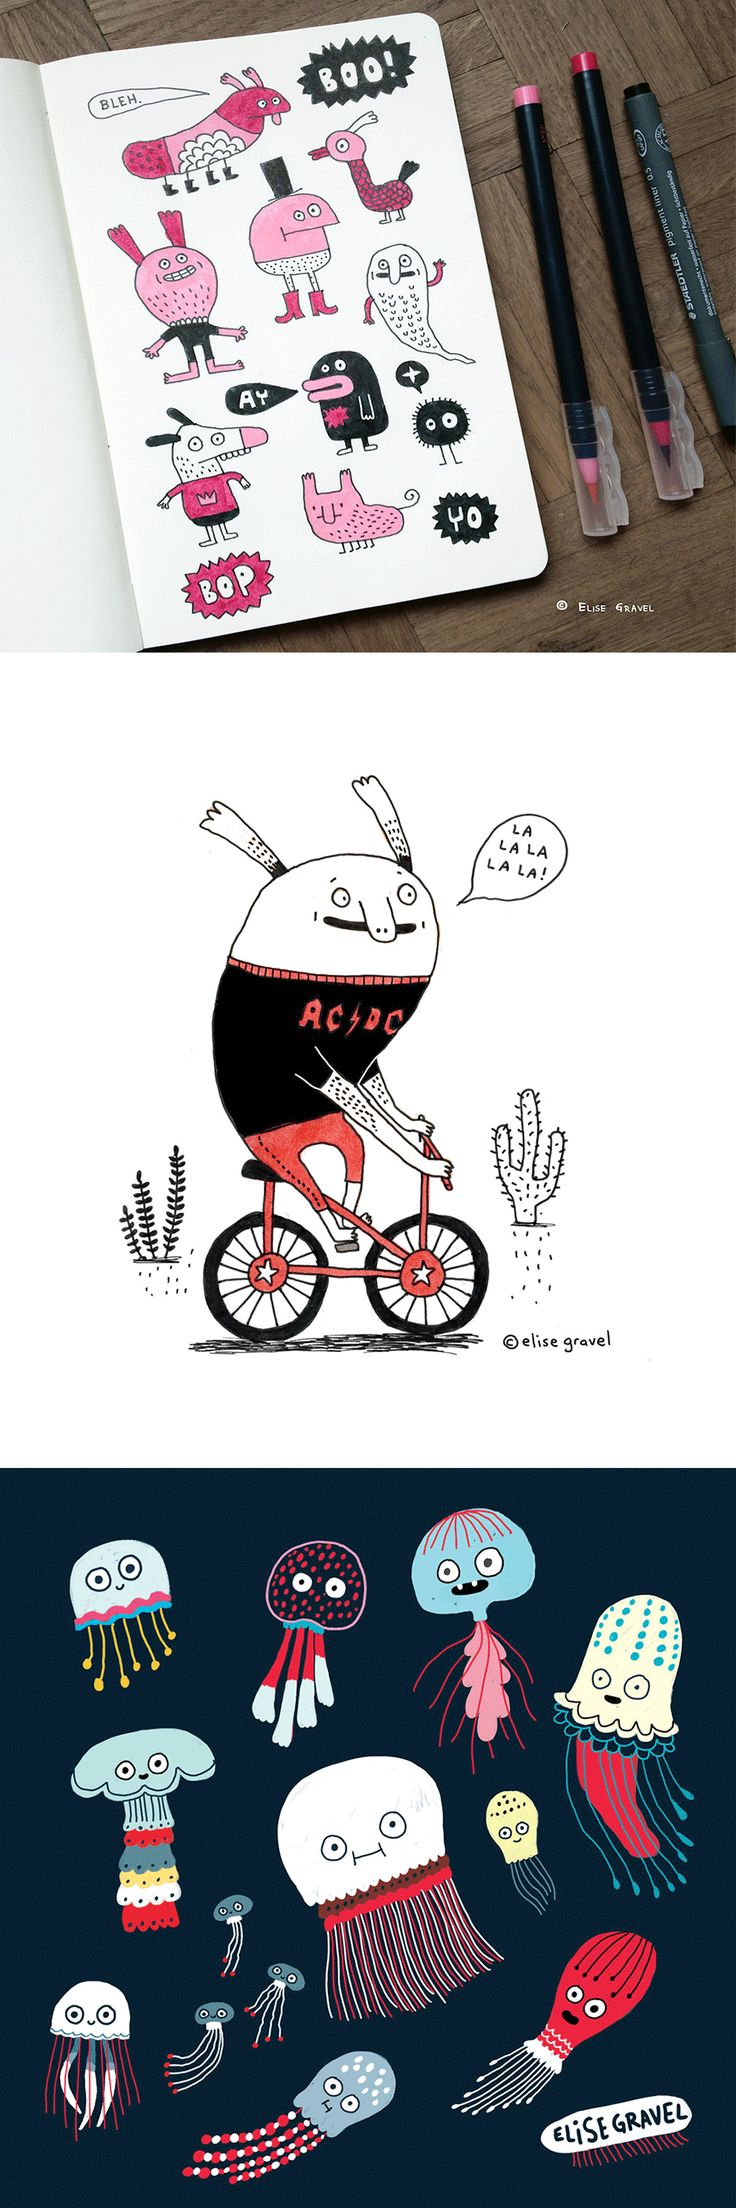 Elise Gravel illustration • characters • doodles • fun • pink • design • monsters • bike • jellyfish •